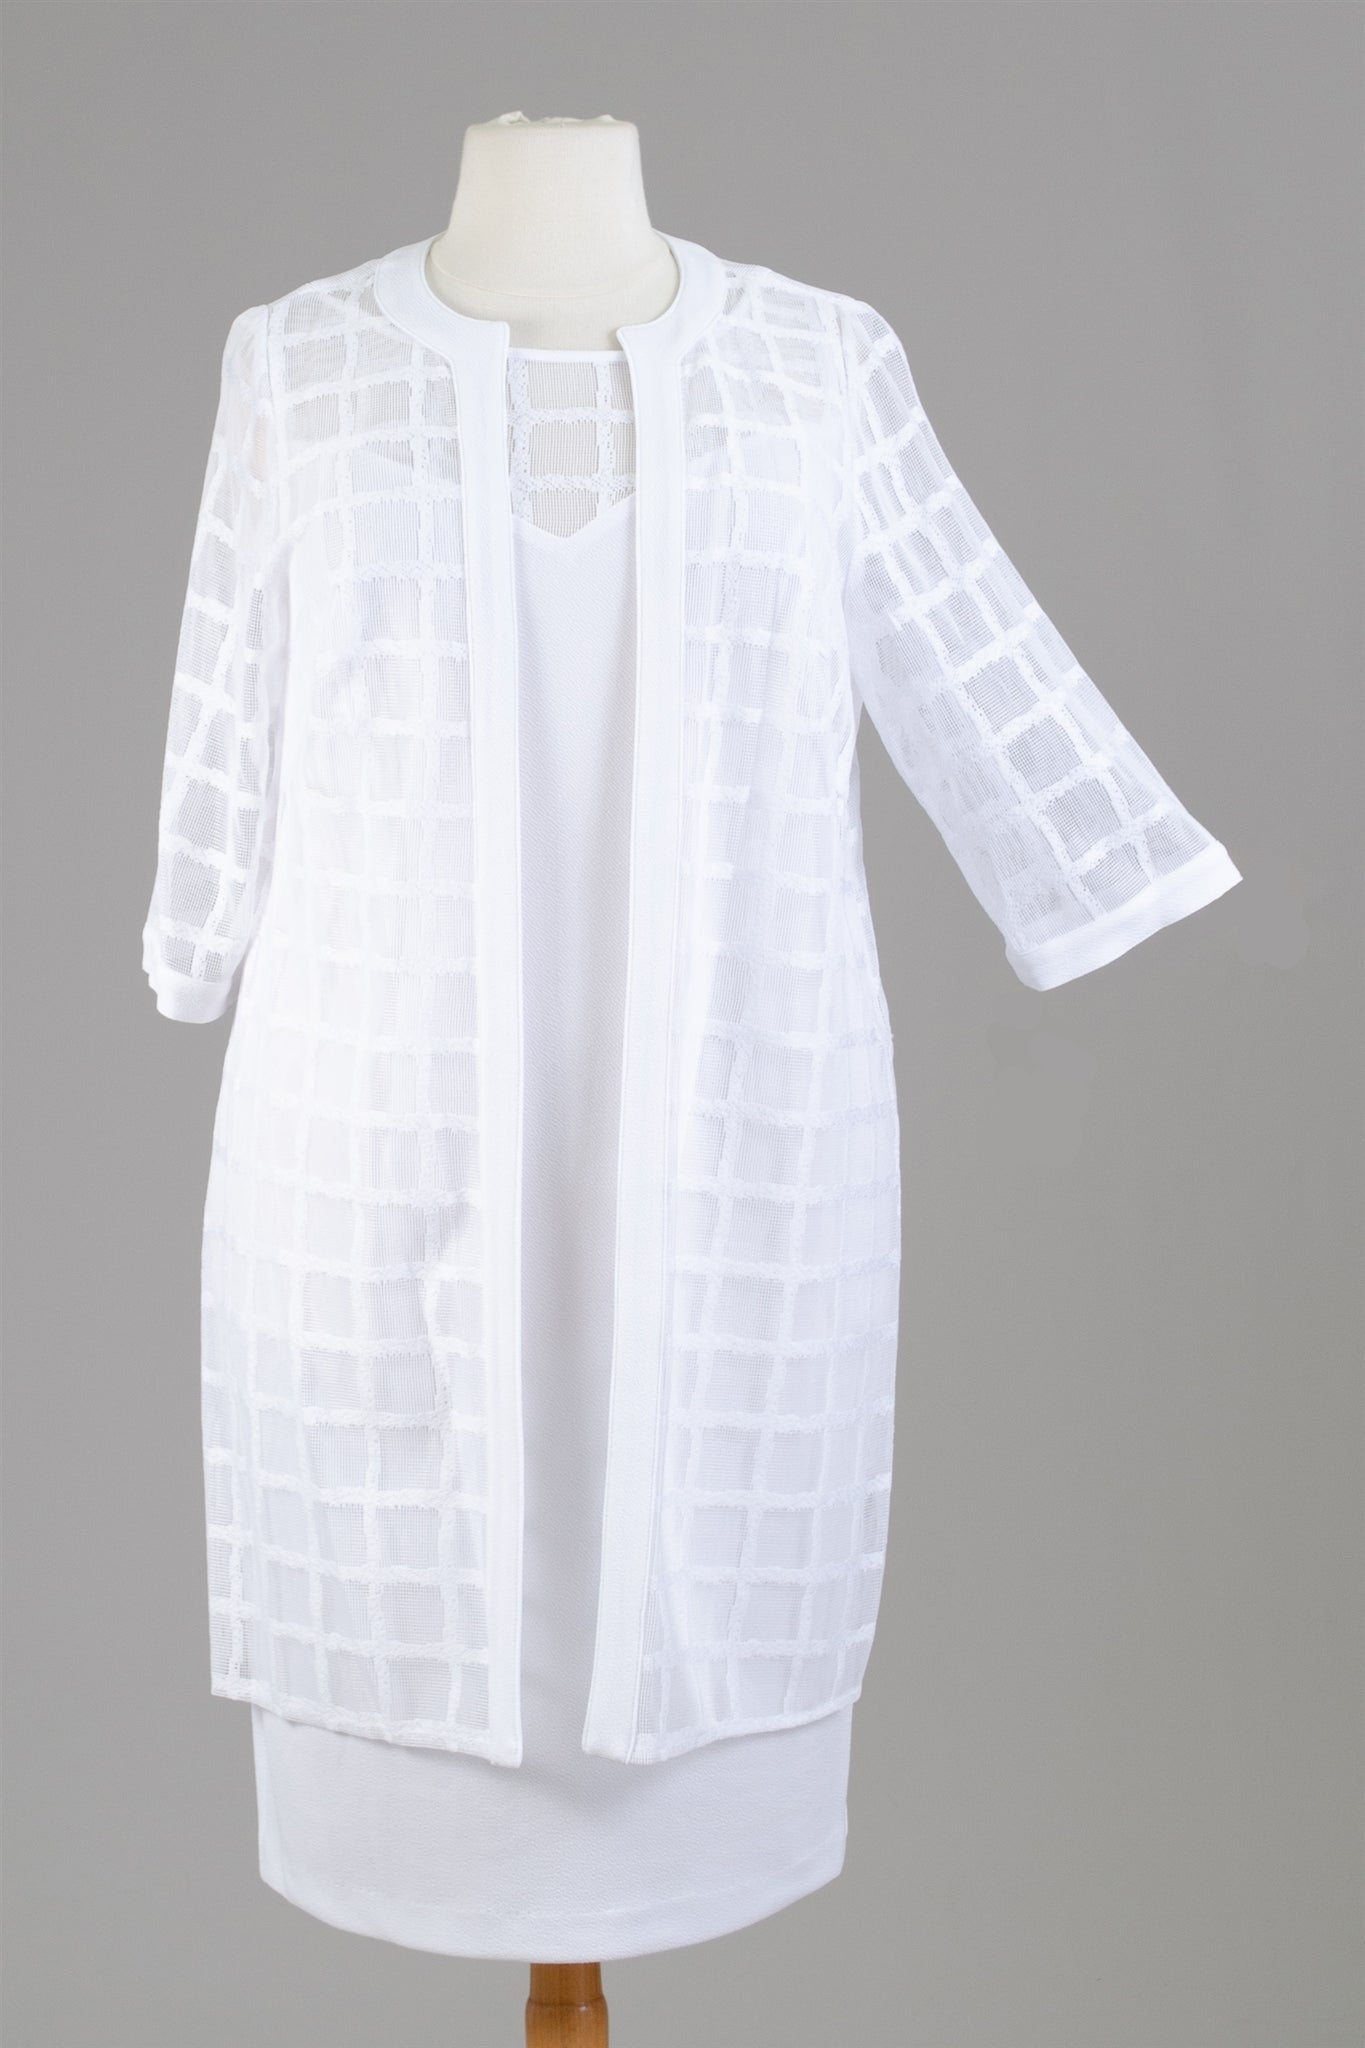 Maya Brook Jacket Dress 27367-White - Church Suits For Less